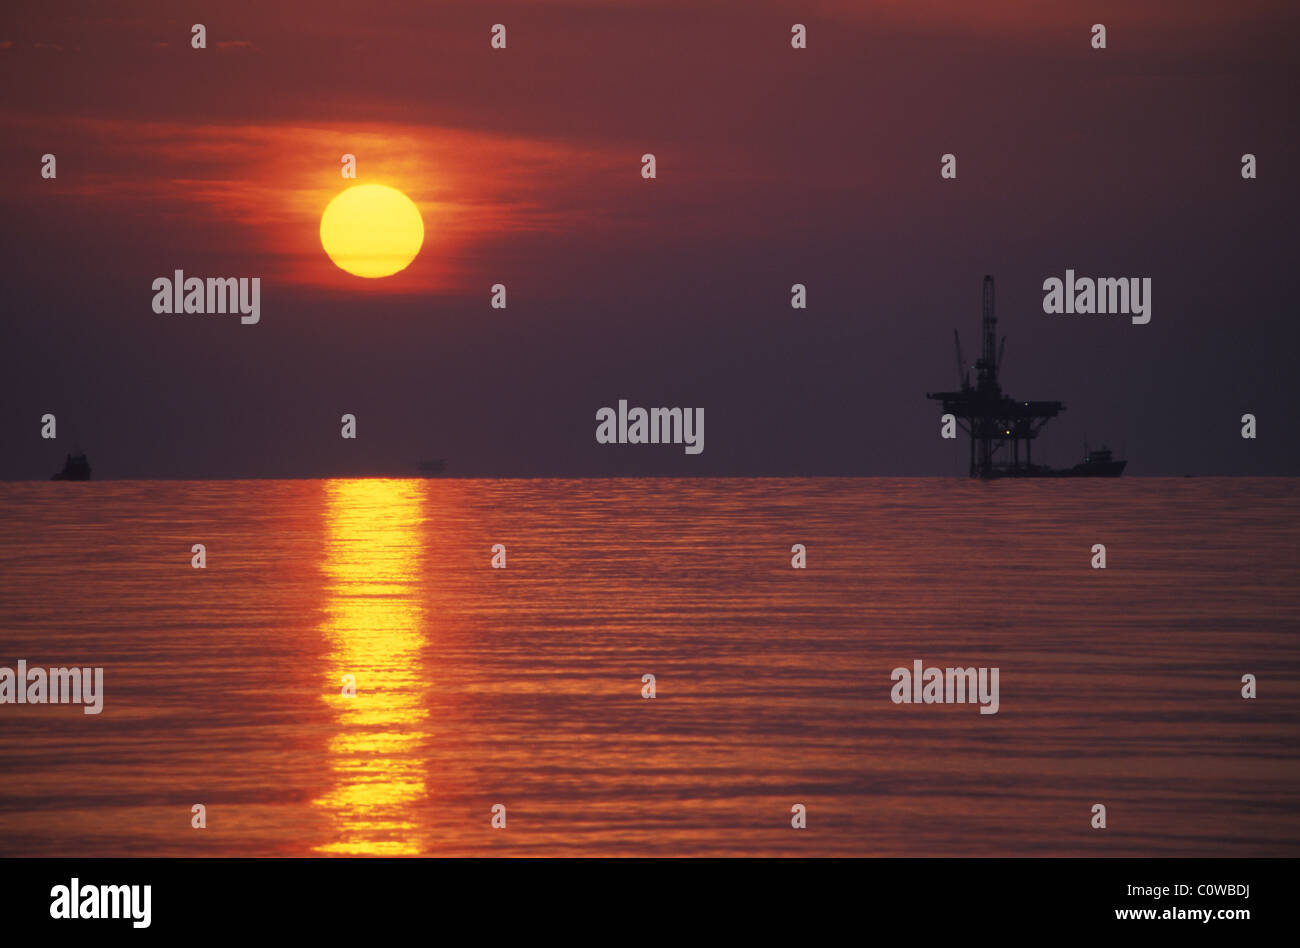 An off-shore oil rig at sunset. - Stock Image